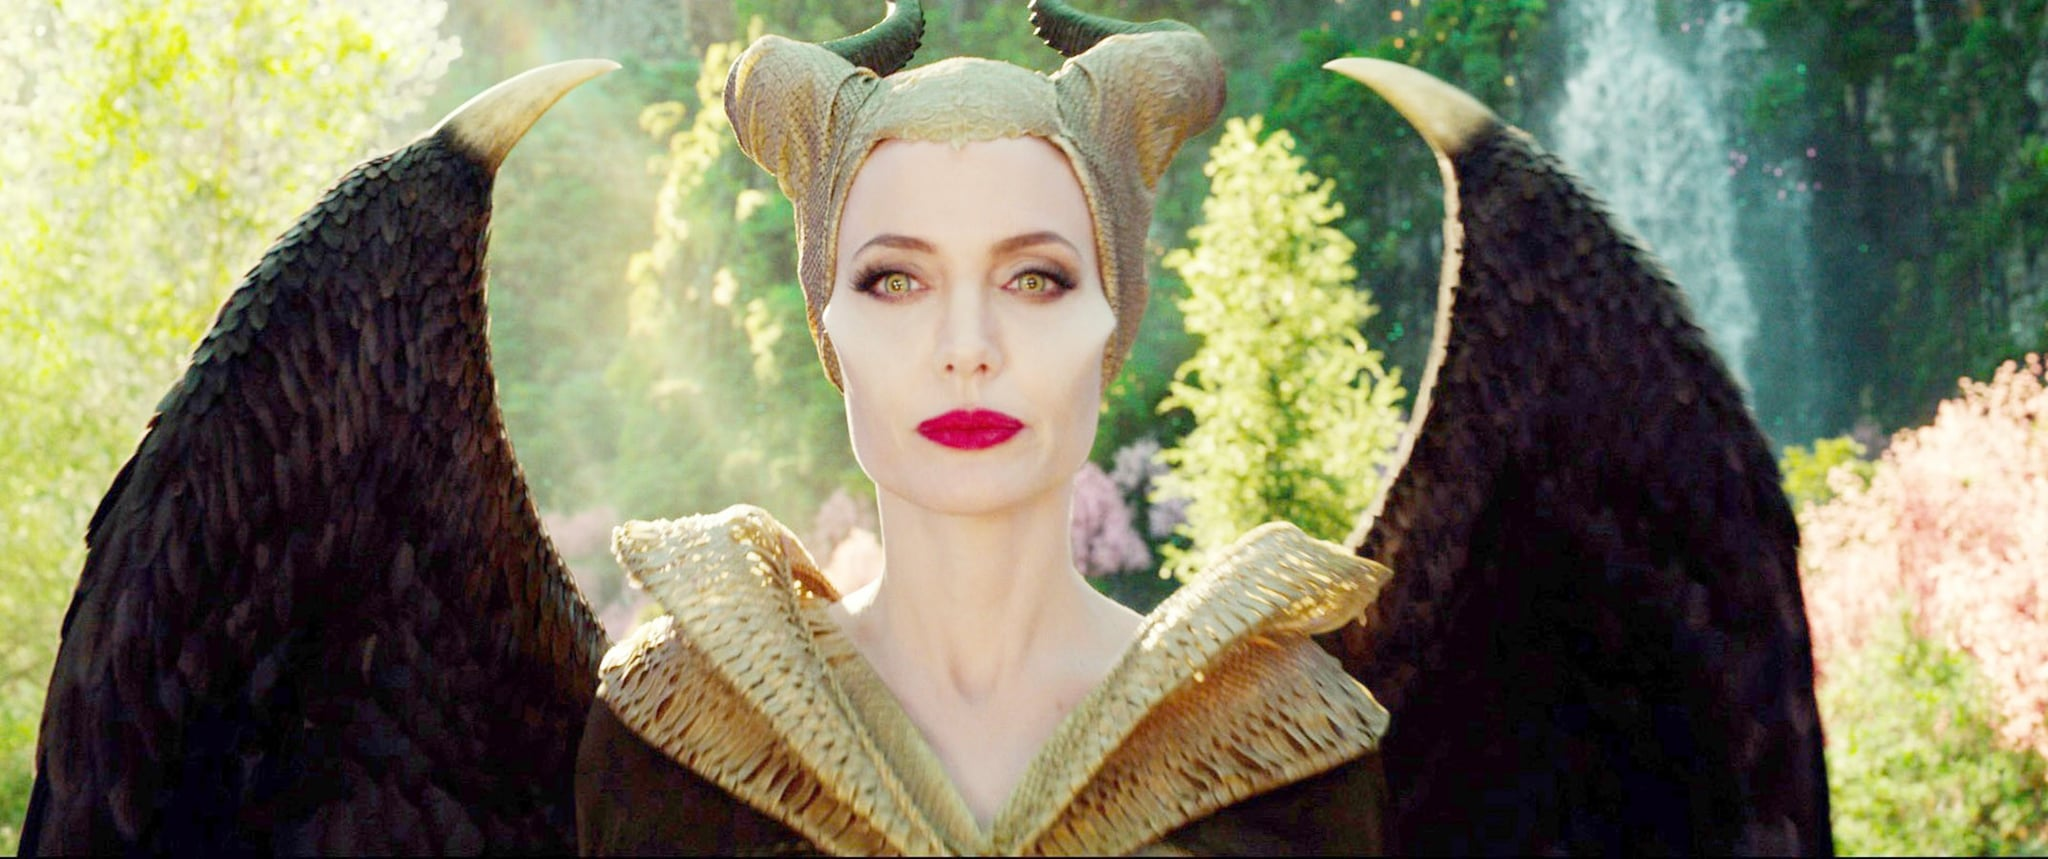 MALEFICENT: MISTRESS OF EVIL, Angelina Jolie as Maleficent, 2019.  Walt Disney Studios Motion Pictures / courtesy Everett Collection